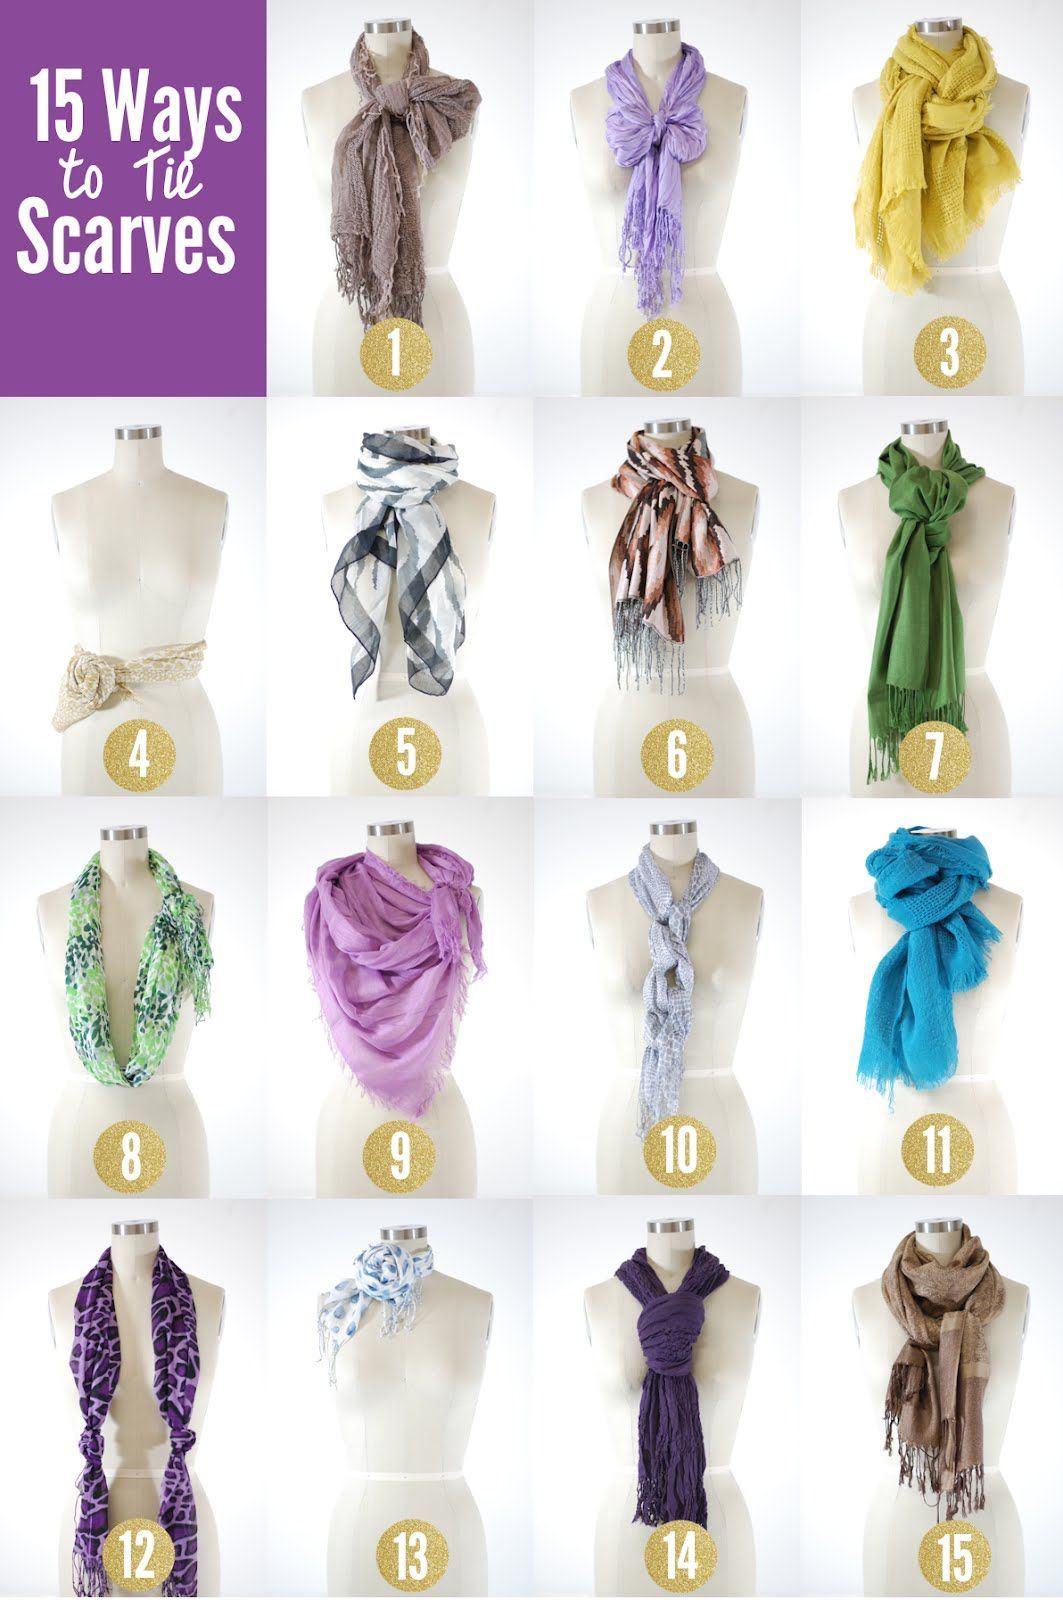 Making a vow to wear more scarves.